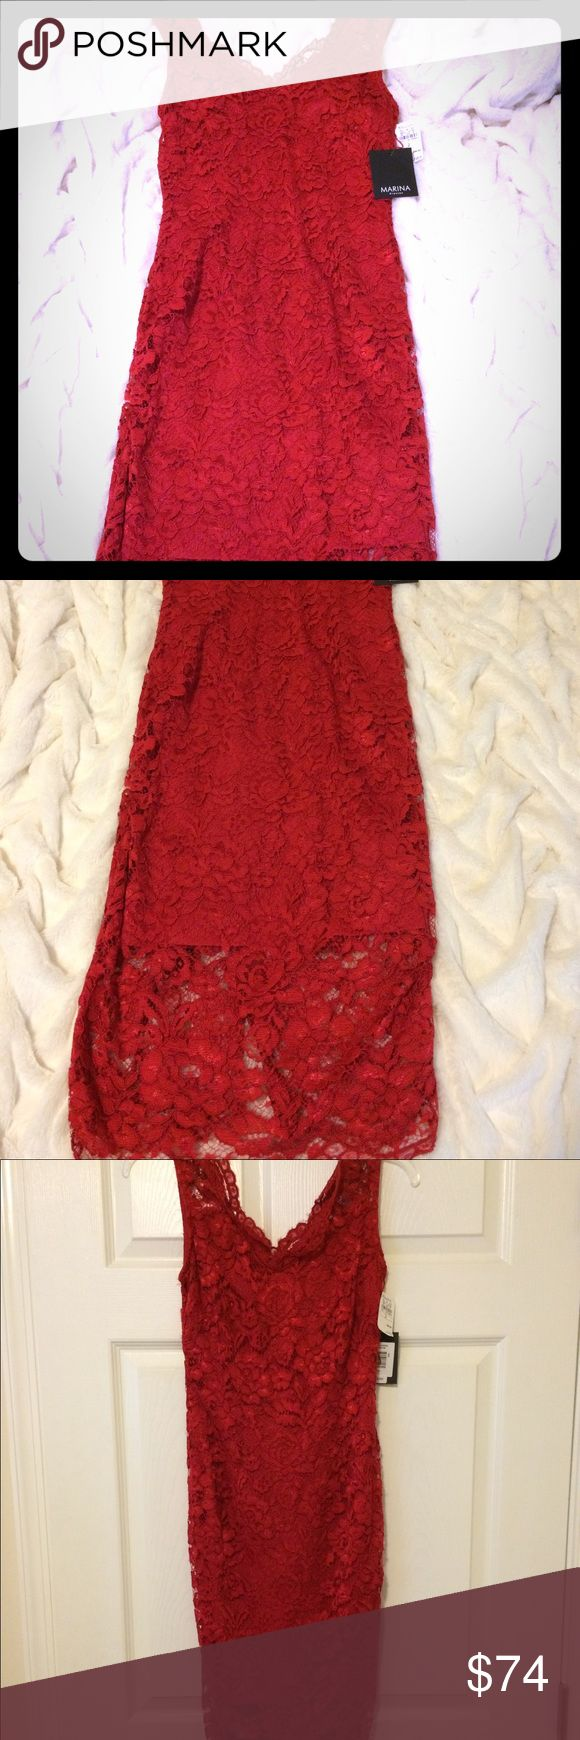 NWT Marina Red lace dress NWT Marina Rinaldi red with lace v neck dress. Originally marked as $129, purchased for $99. Lace 55%nylon, 45% cotton; lining 100% polyester HUGE DISCOUNT FOR NEXT 24 HOURS Marina Rinaldi Dresses